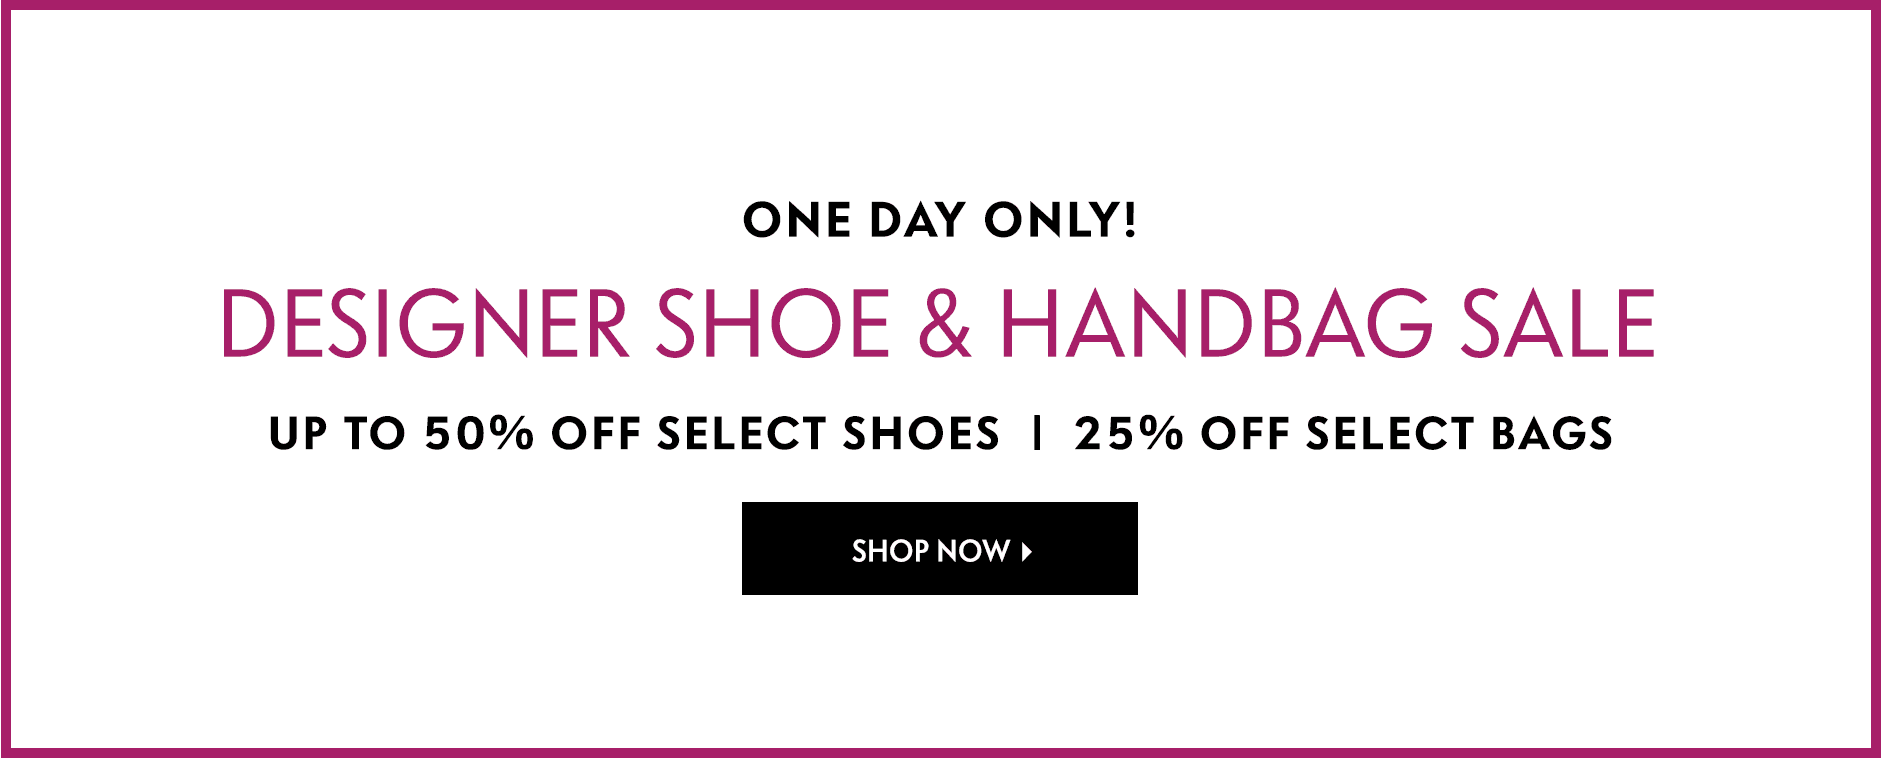 One day only! Designer Shoe & Handbag Sale